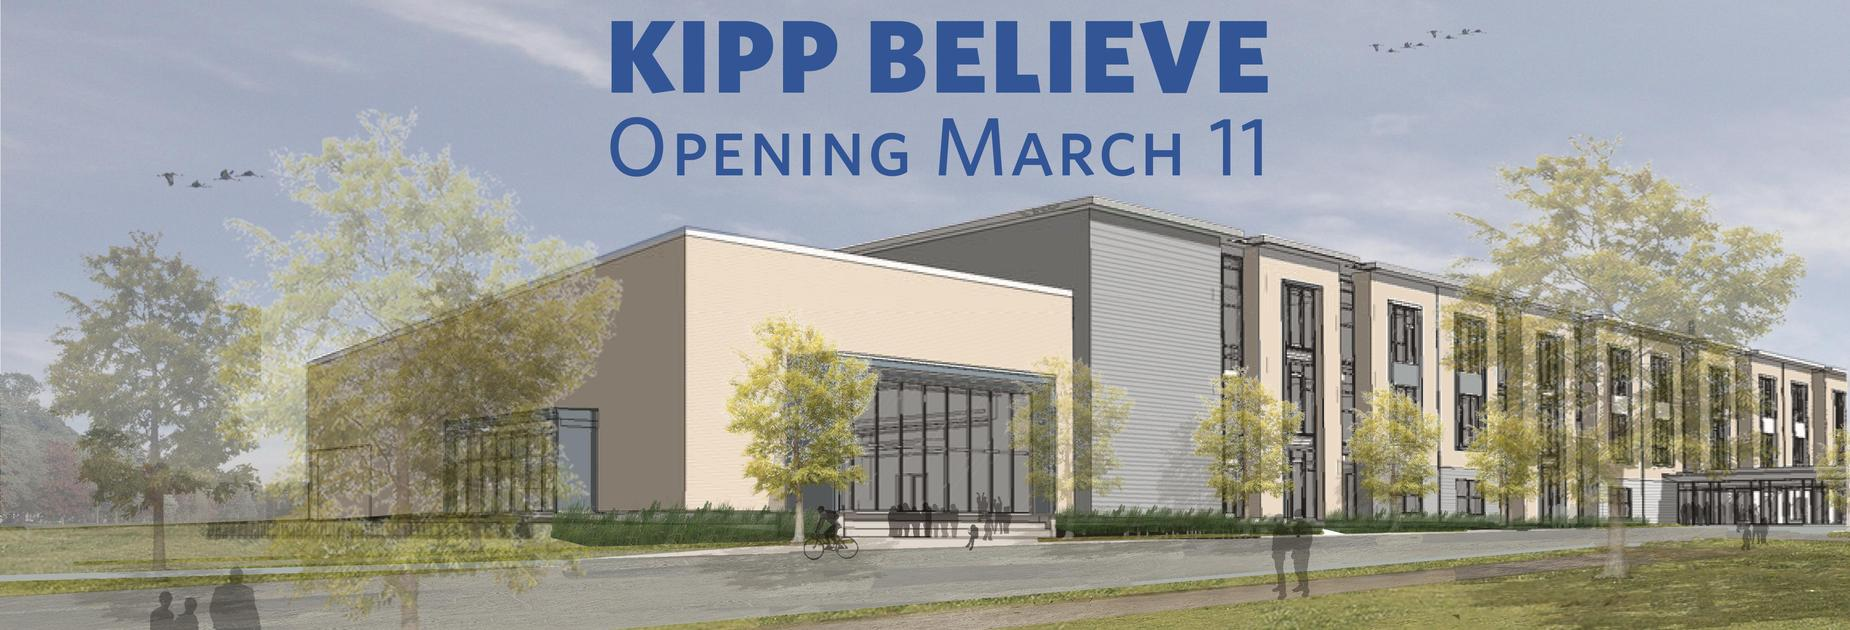 Rendering of new KIPP Believe building opening March 11